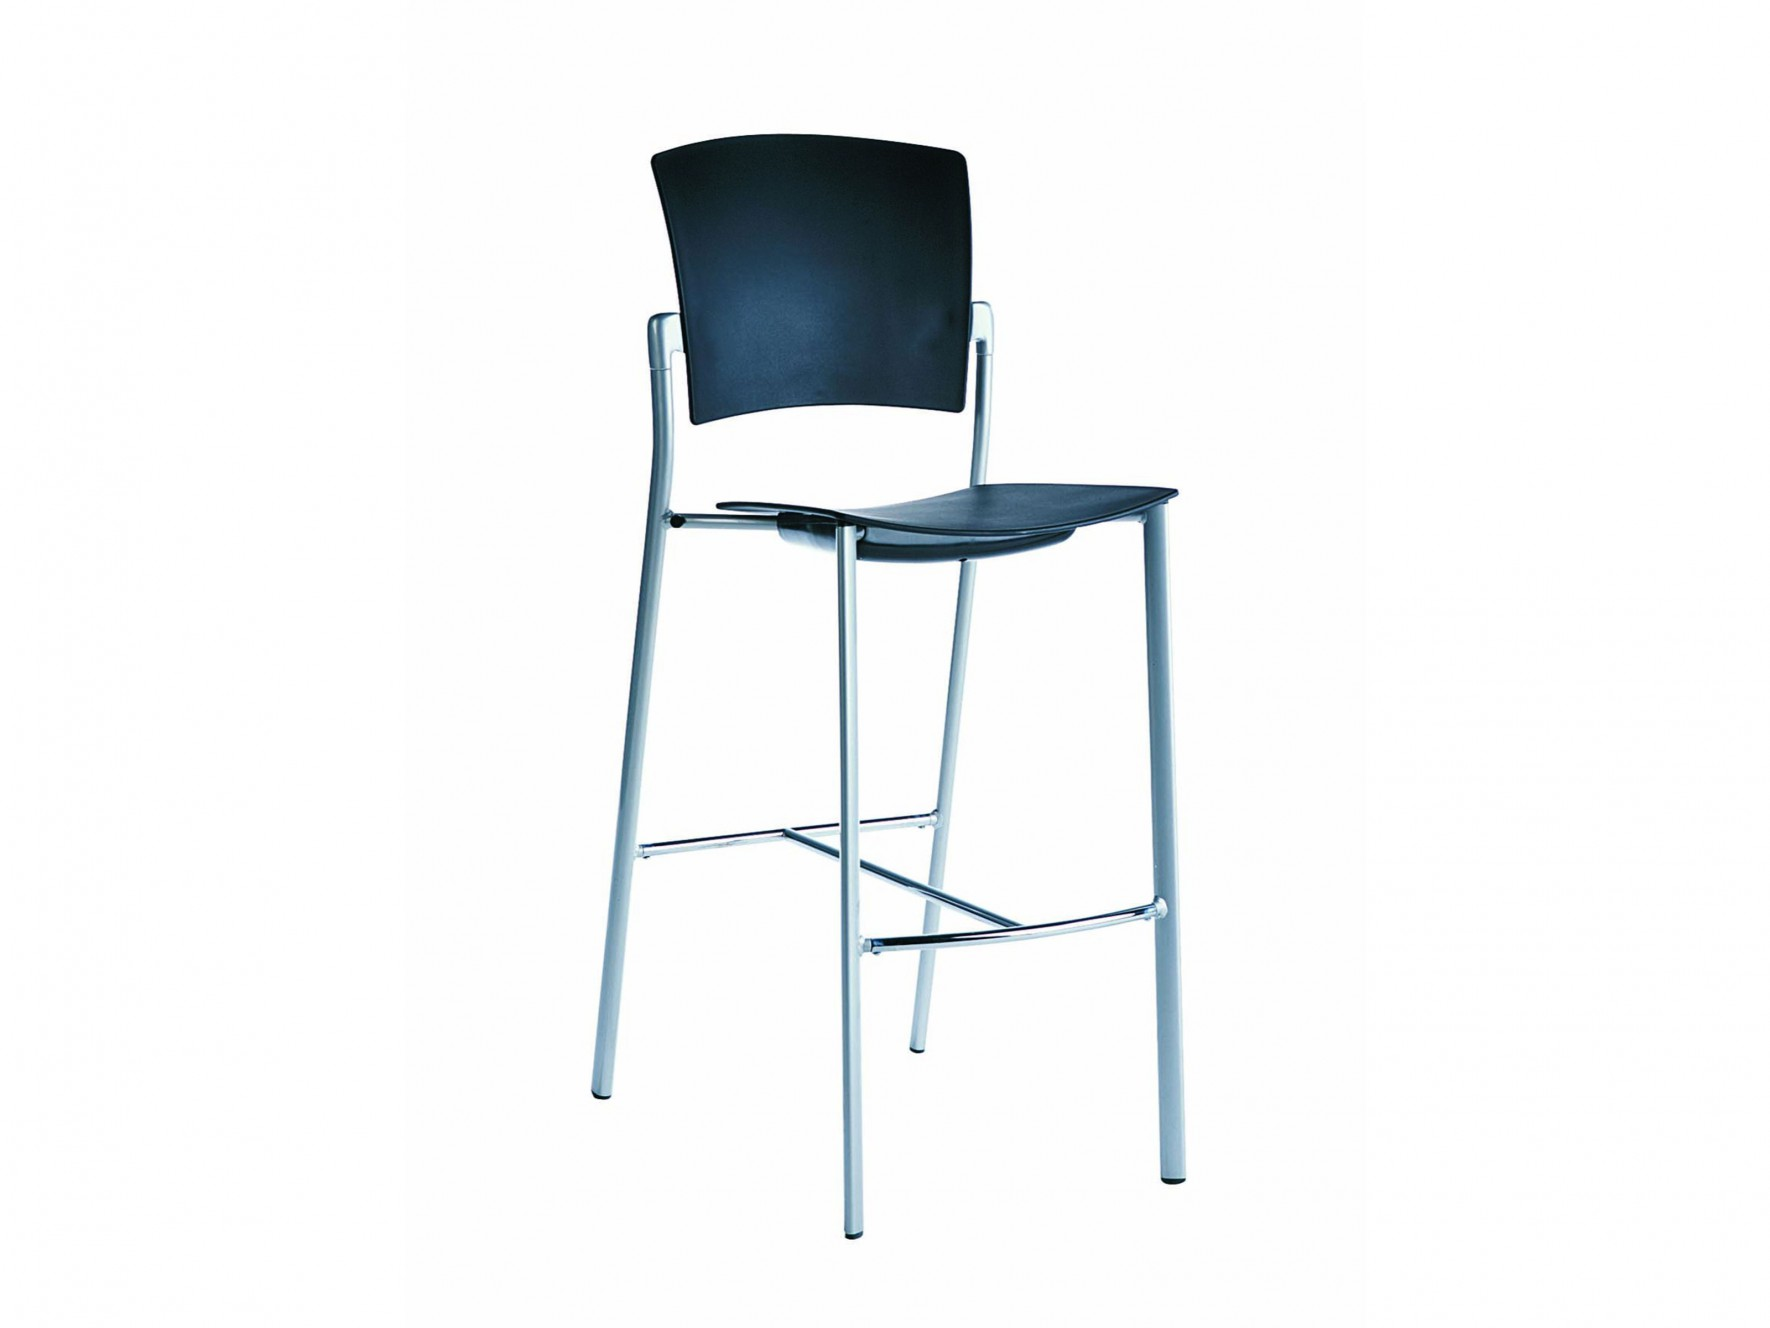 Enea bar stool by Coalesse